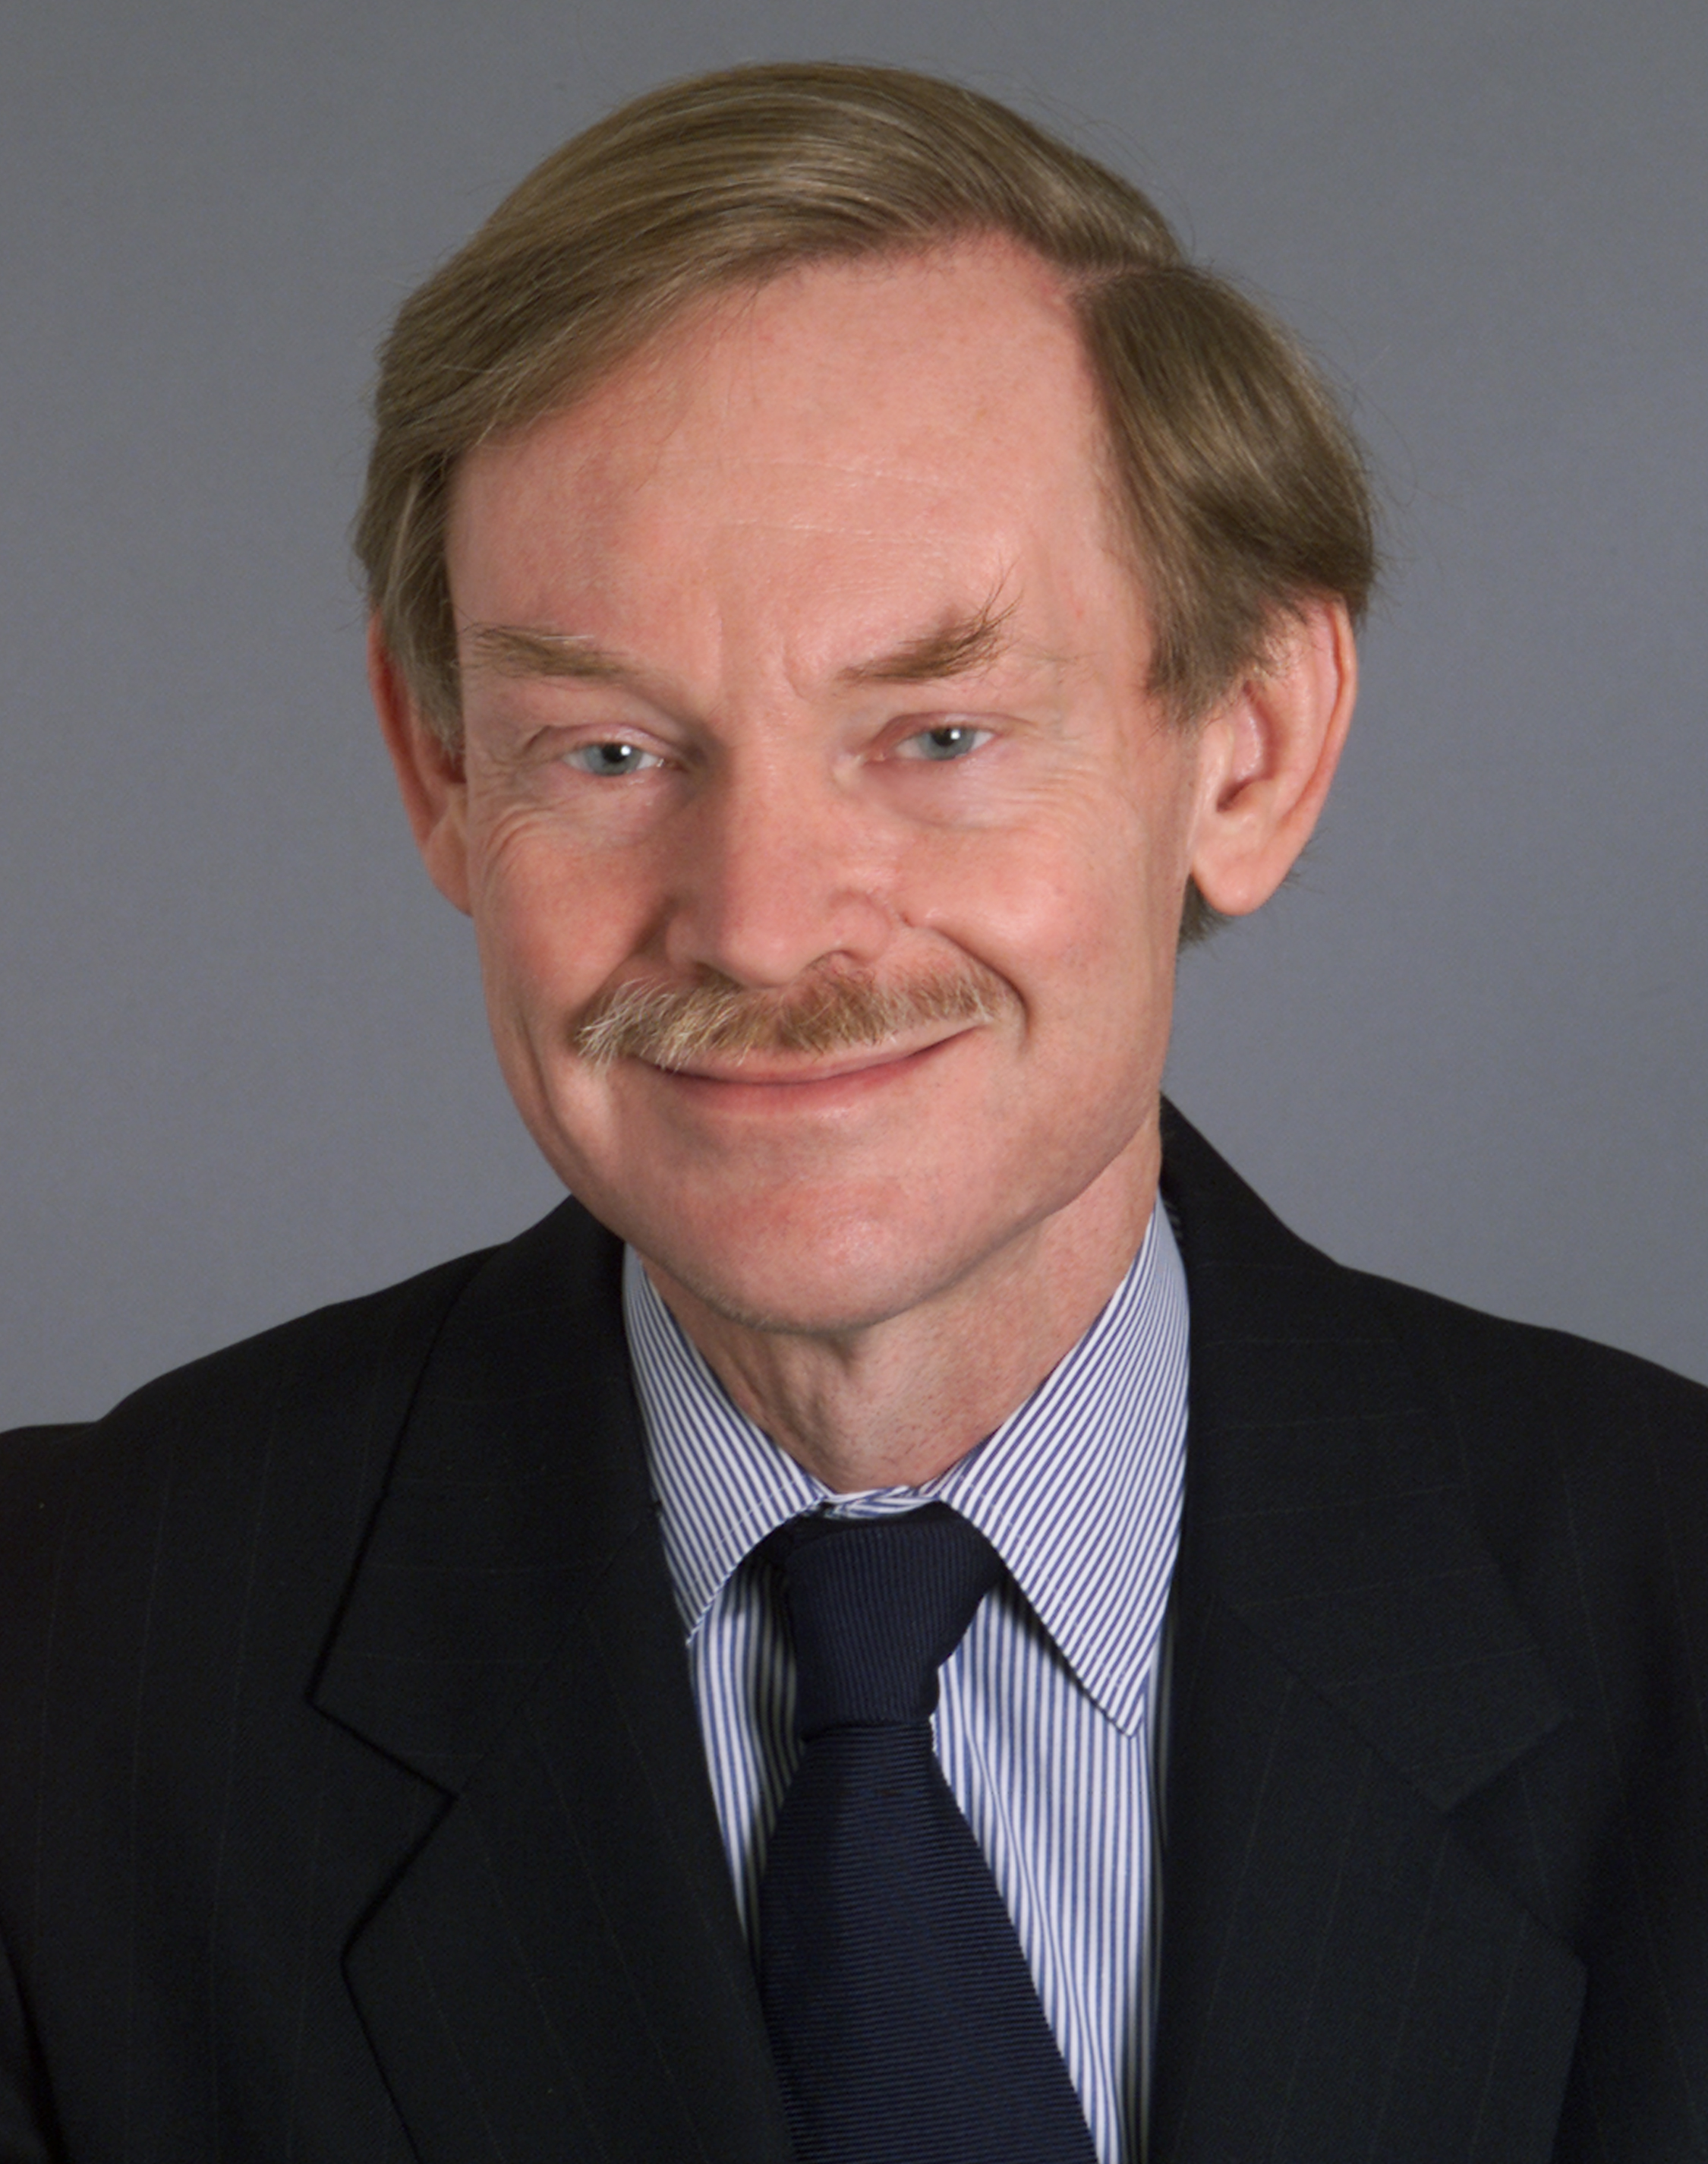 Robert B. Zoellick, President of the World Bank Group